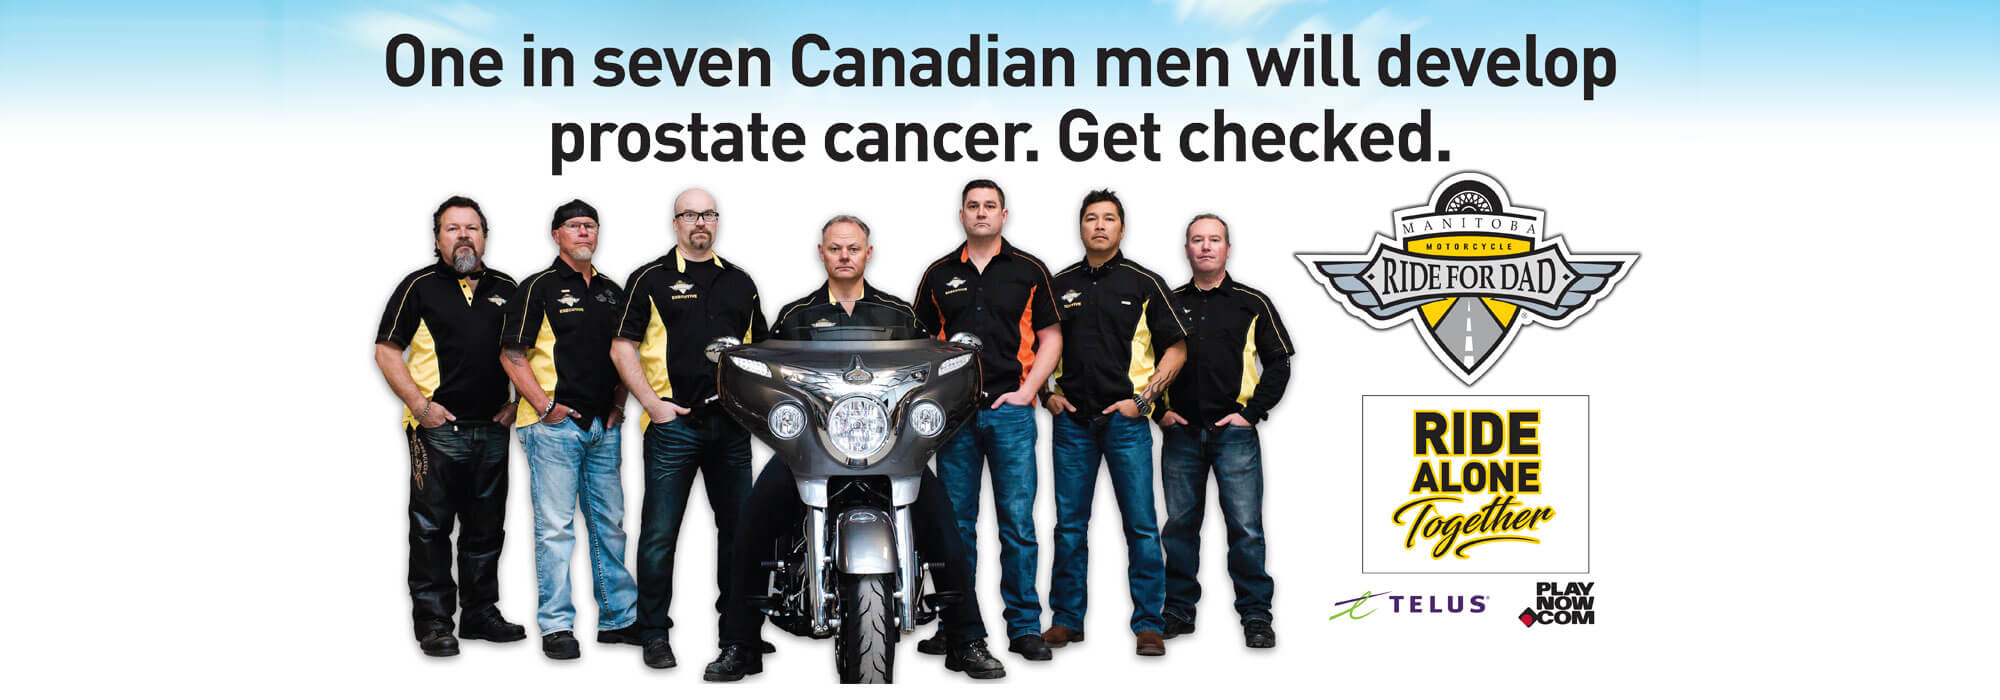 Manitoba Motorcycle Ride for Dad 2020